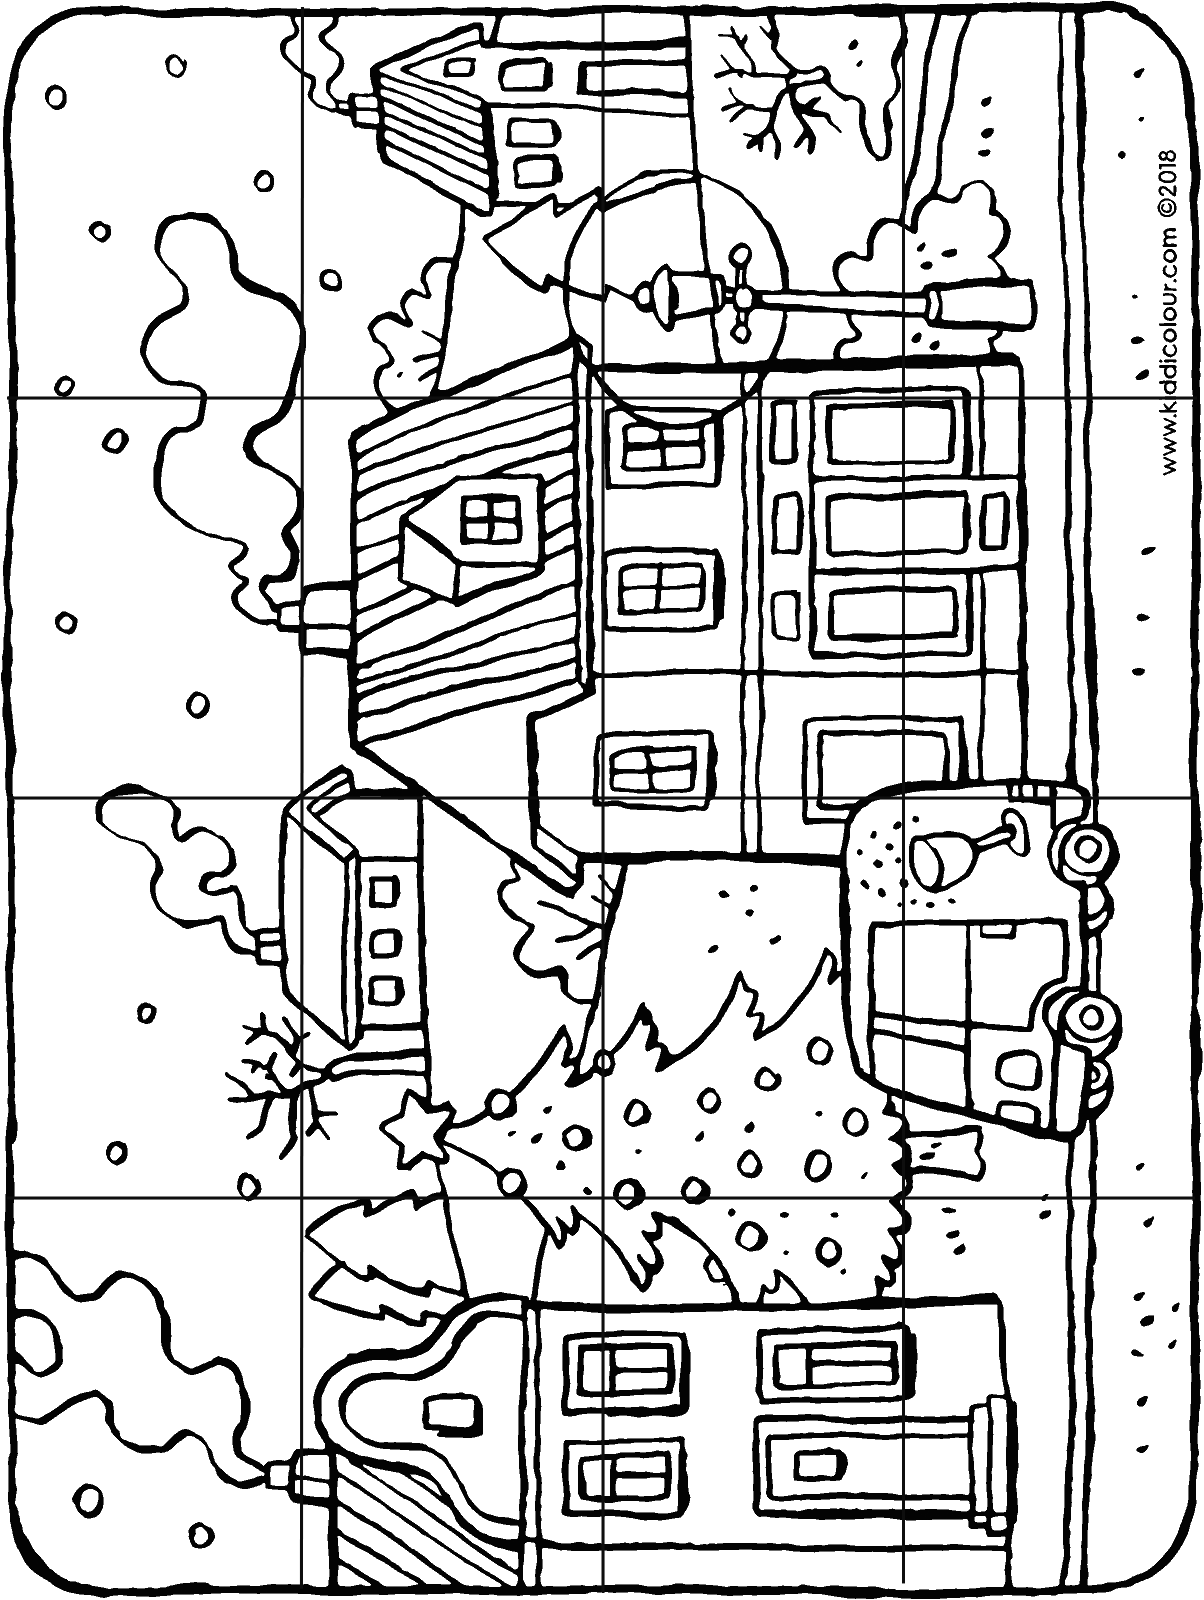 16-piece puzzle winter in a village colouring page drawing picture 01H